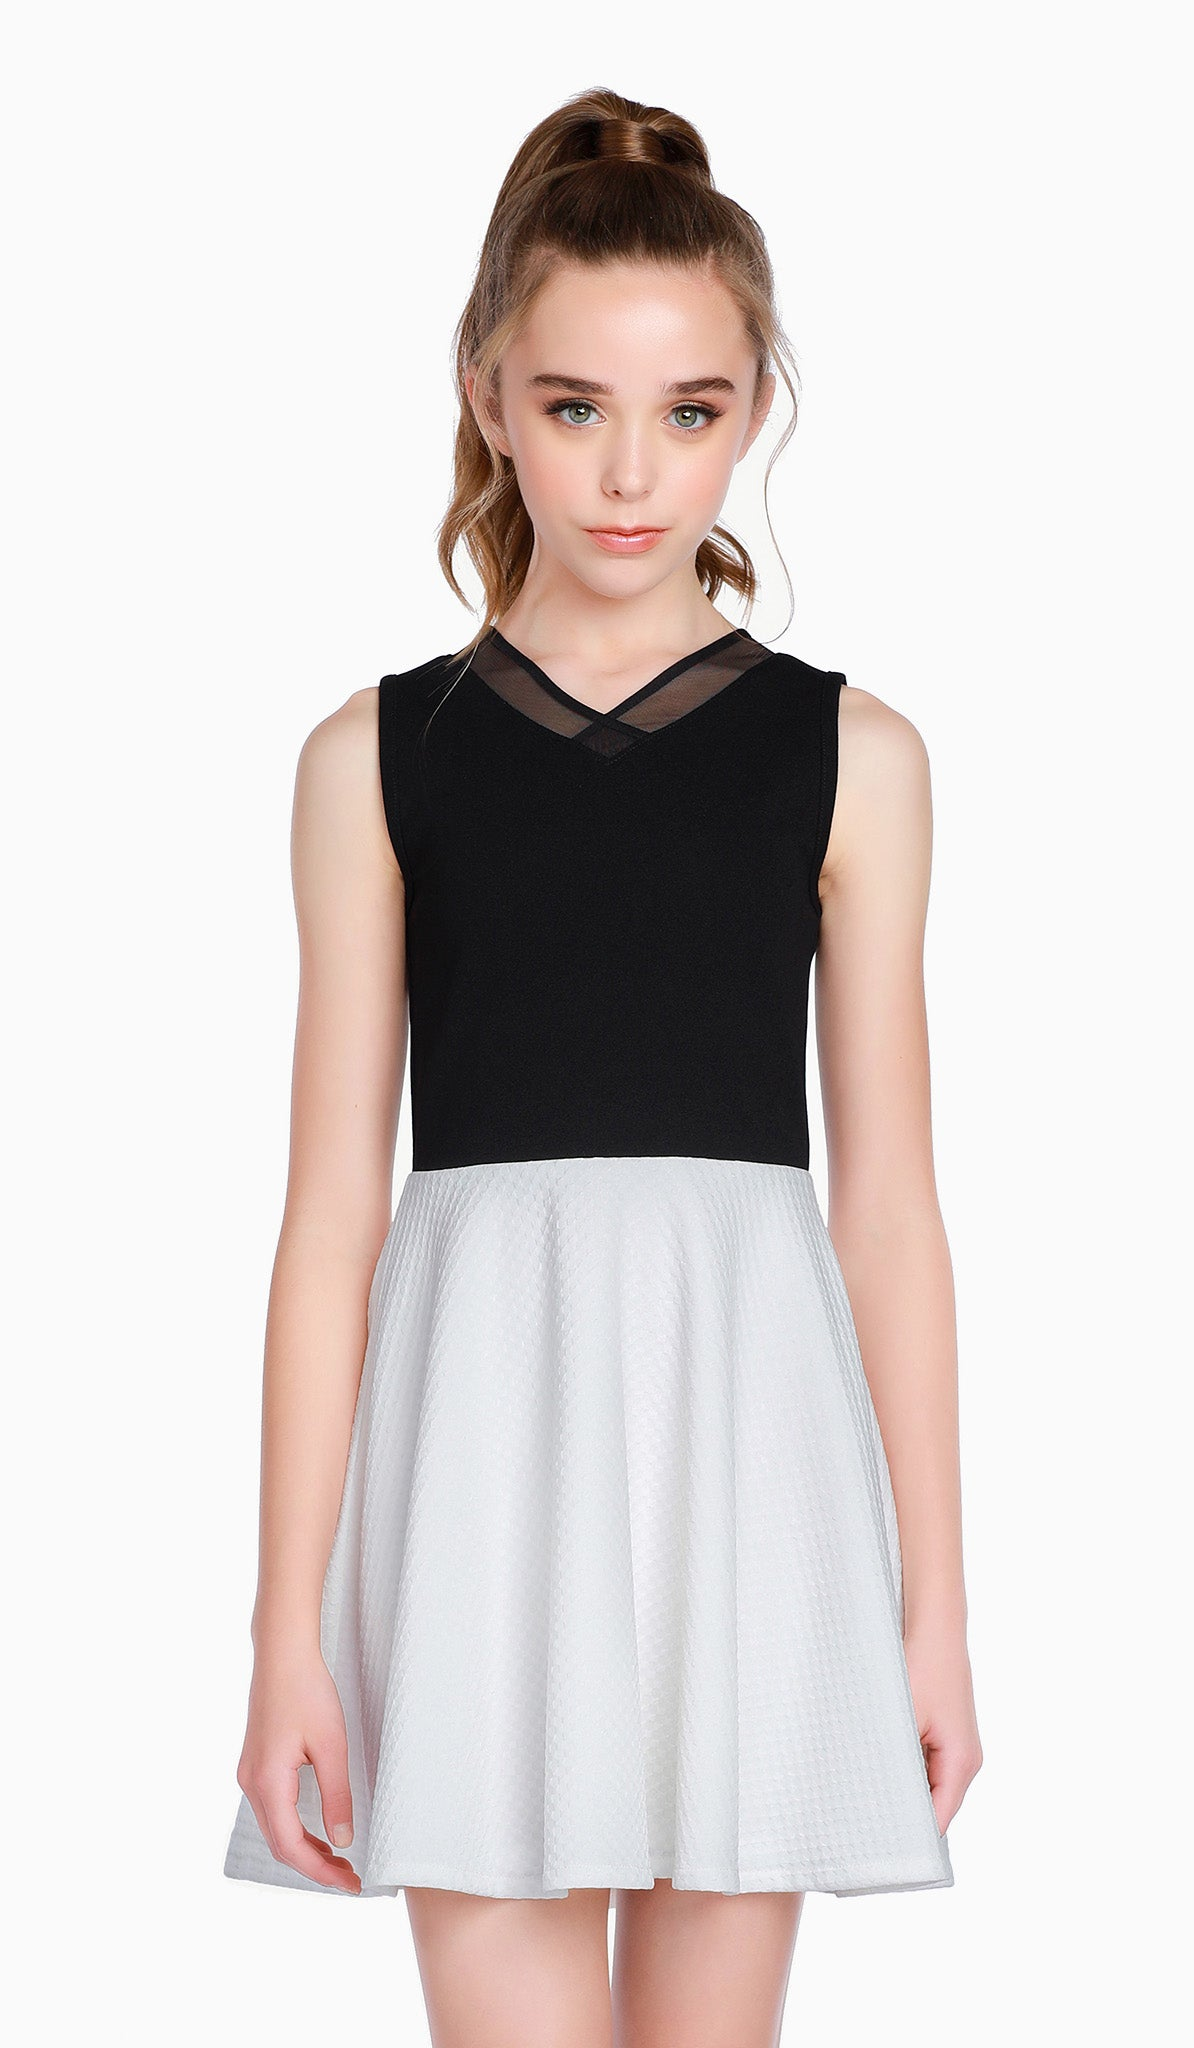 THE BECCA DRESS - Sallymiller.com - [variant title] - | Event & Party Dresses for Tween Girls & Juniors | Weddings Dresses, Bat Mitzvah Dresses, Sweet Sixteen Dresses, Graduation Dresses, Birthday Party Dresses, Bar Mitzvah Dresses, Cotillion Dresses